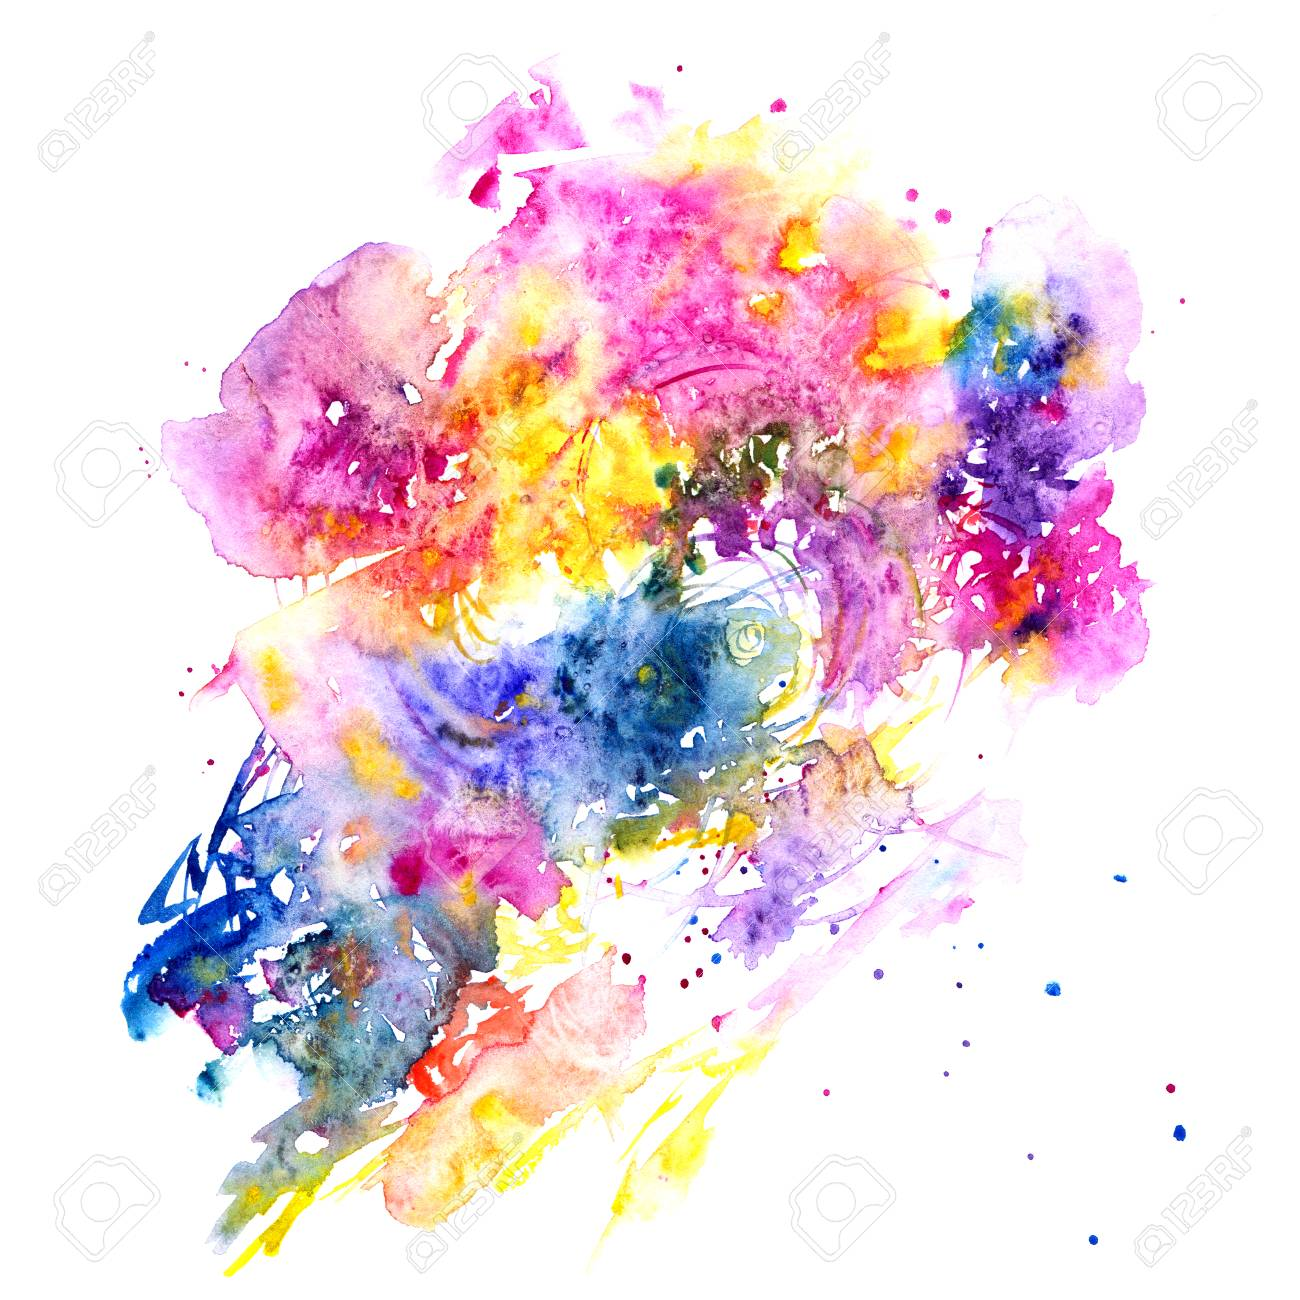 Multicolor watercolor splash abstract background stock photo 98209987